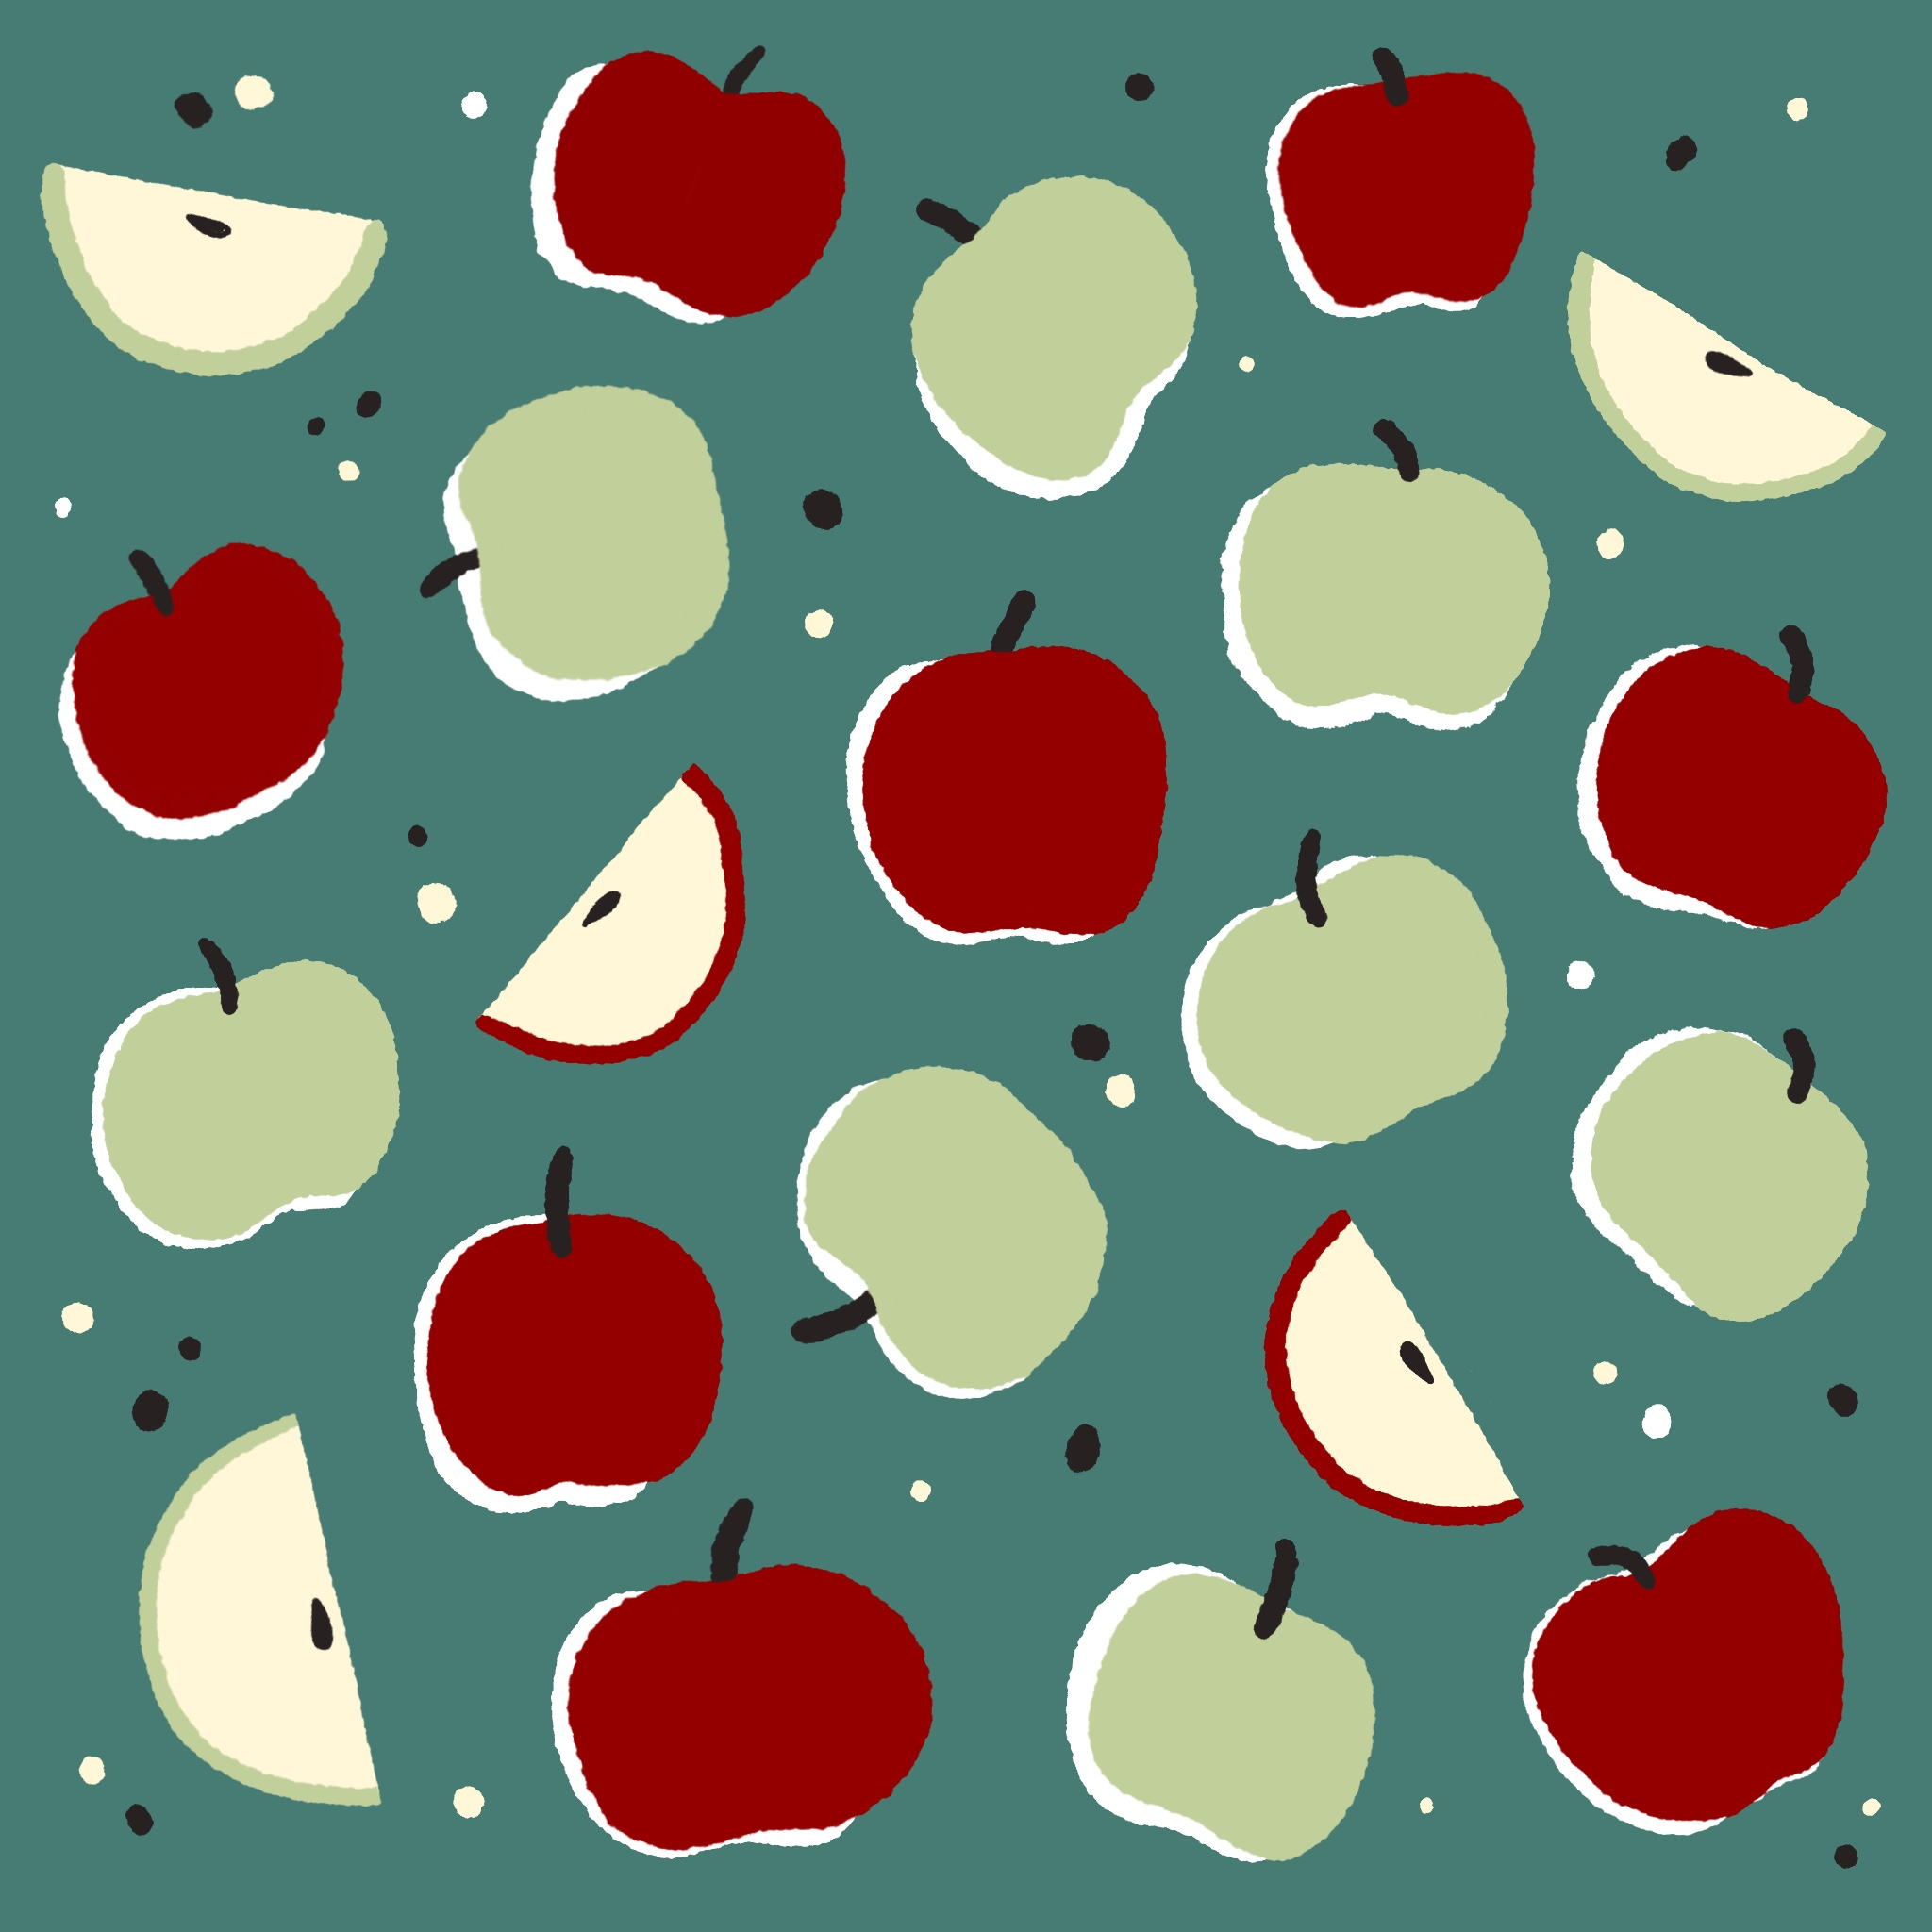 An illustrated pattern of apples